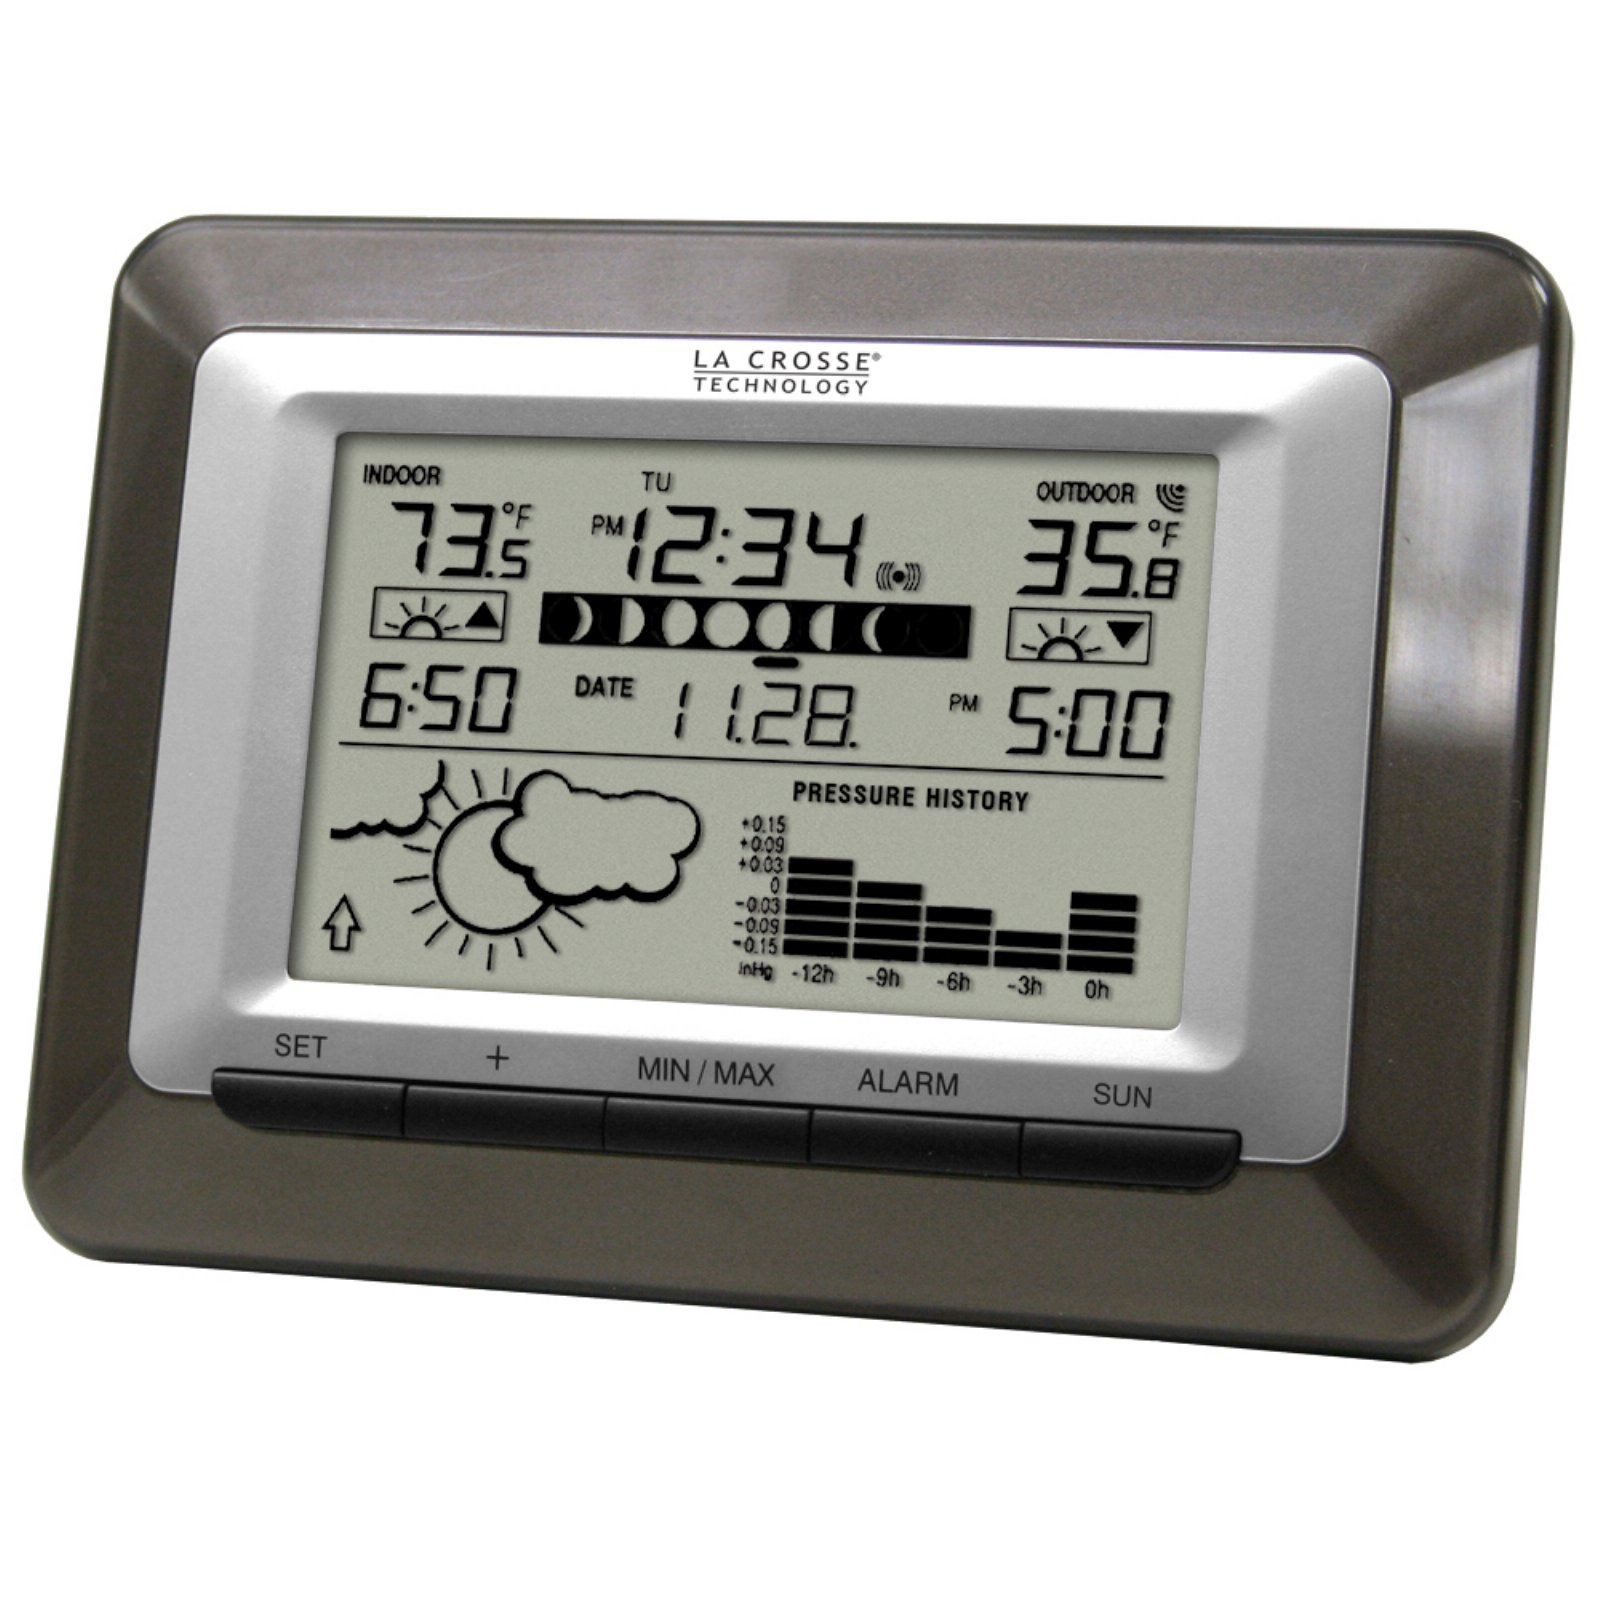 La Crosse Technology Wireless Advanced Sun Moon Weather Station by LaCrosse Technology